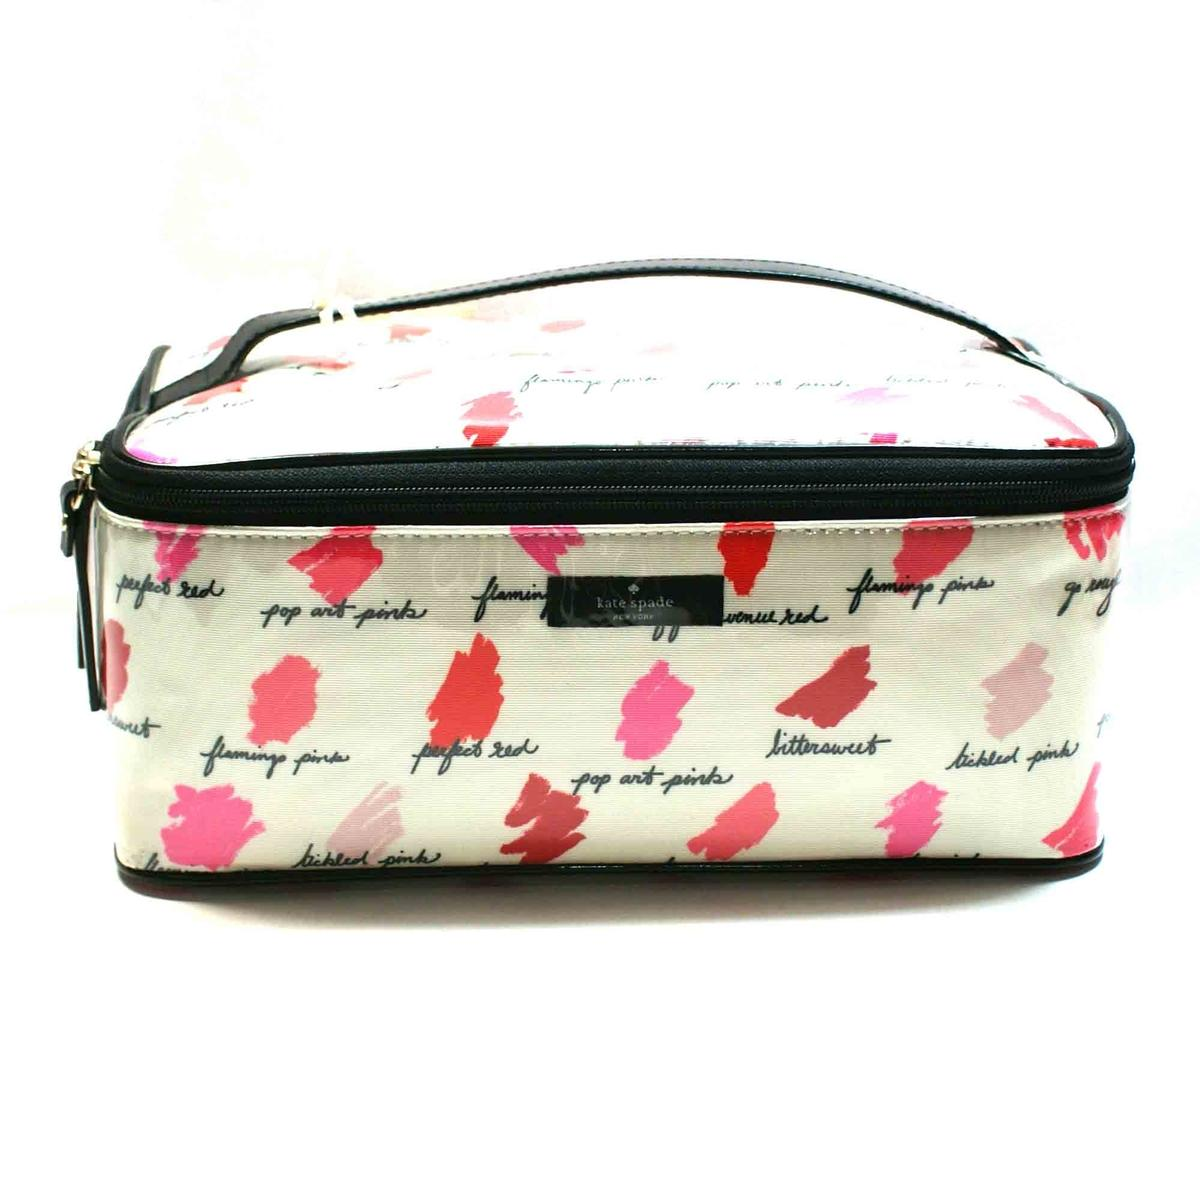 Home Kate Spade Large Colin Lilac Court Cosmetic Bag Lipsticks Click Thumbnail To Zoom Found